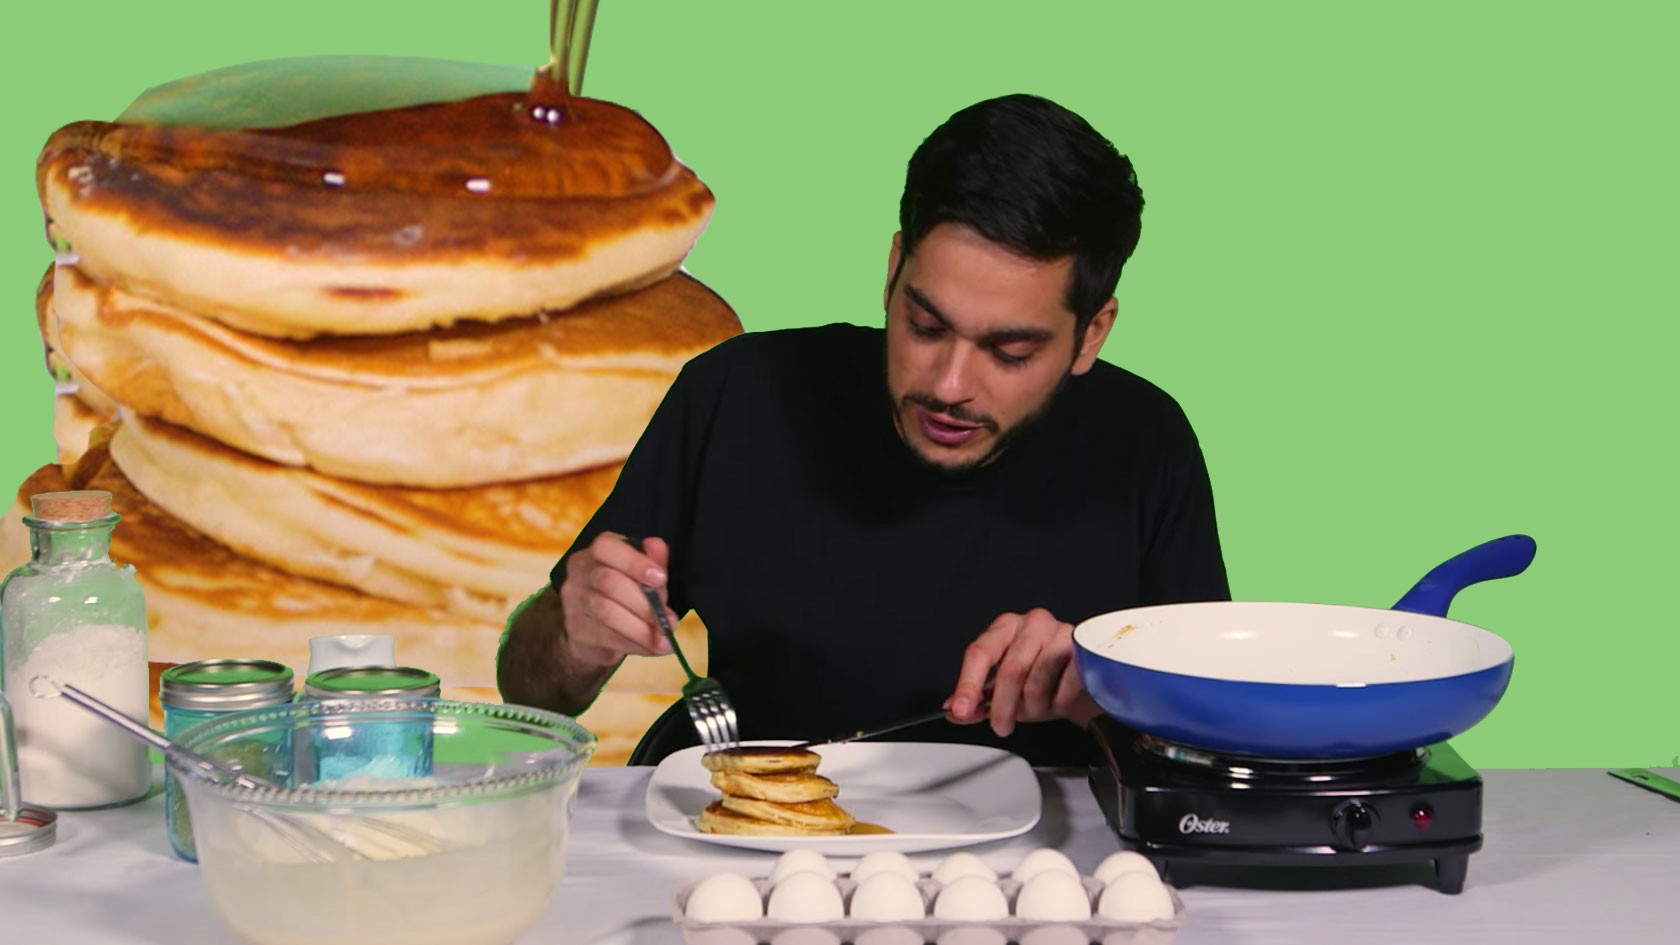 How to Make Pot Pancakes with Weed Butter